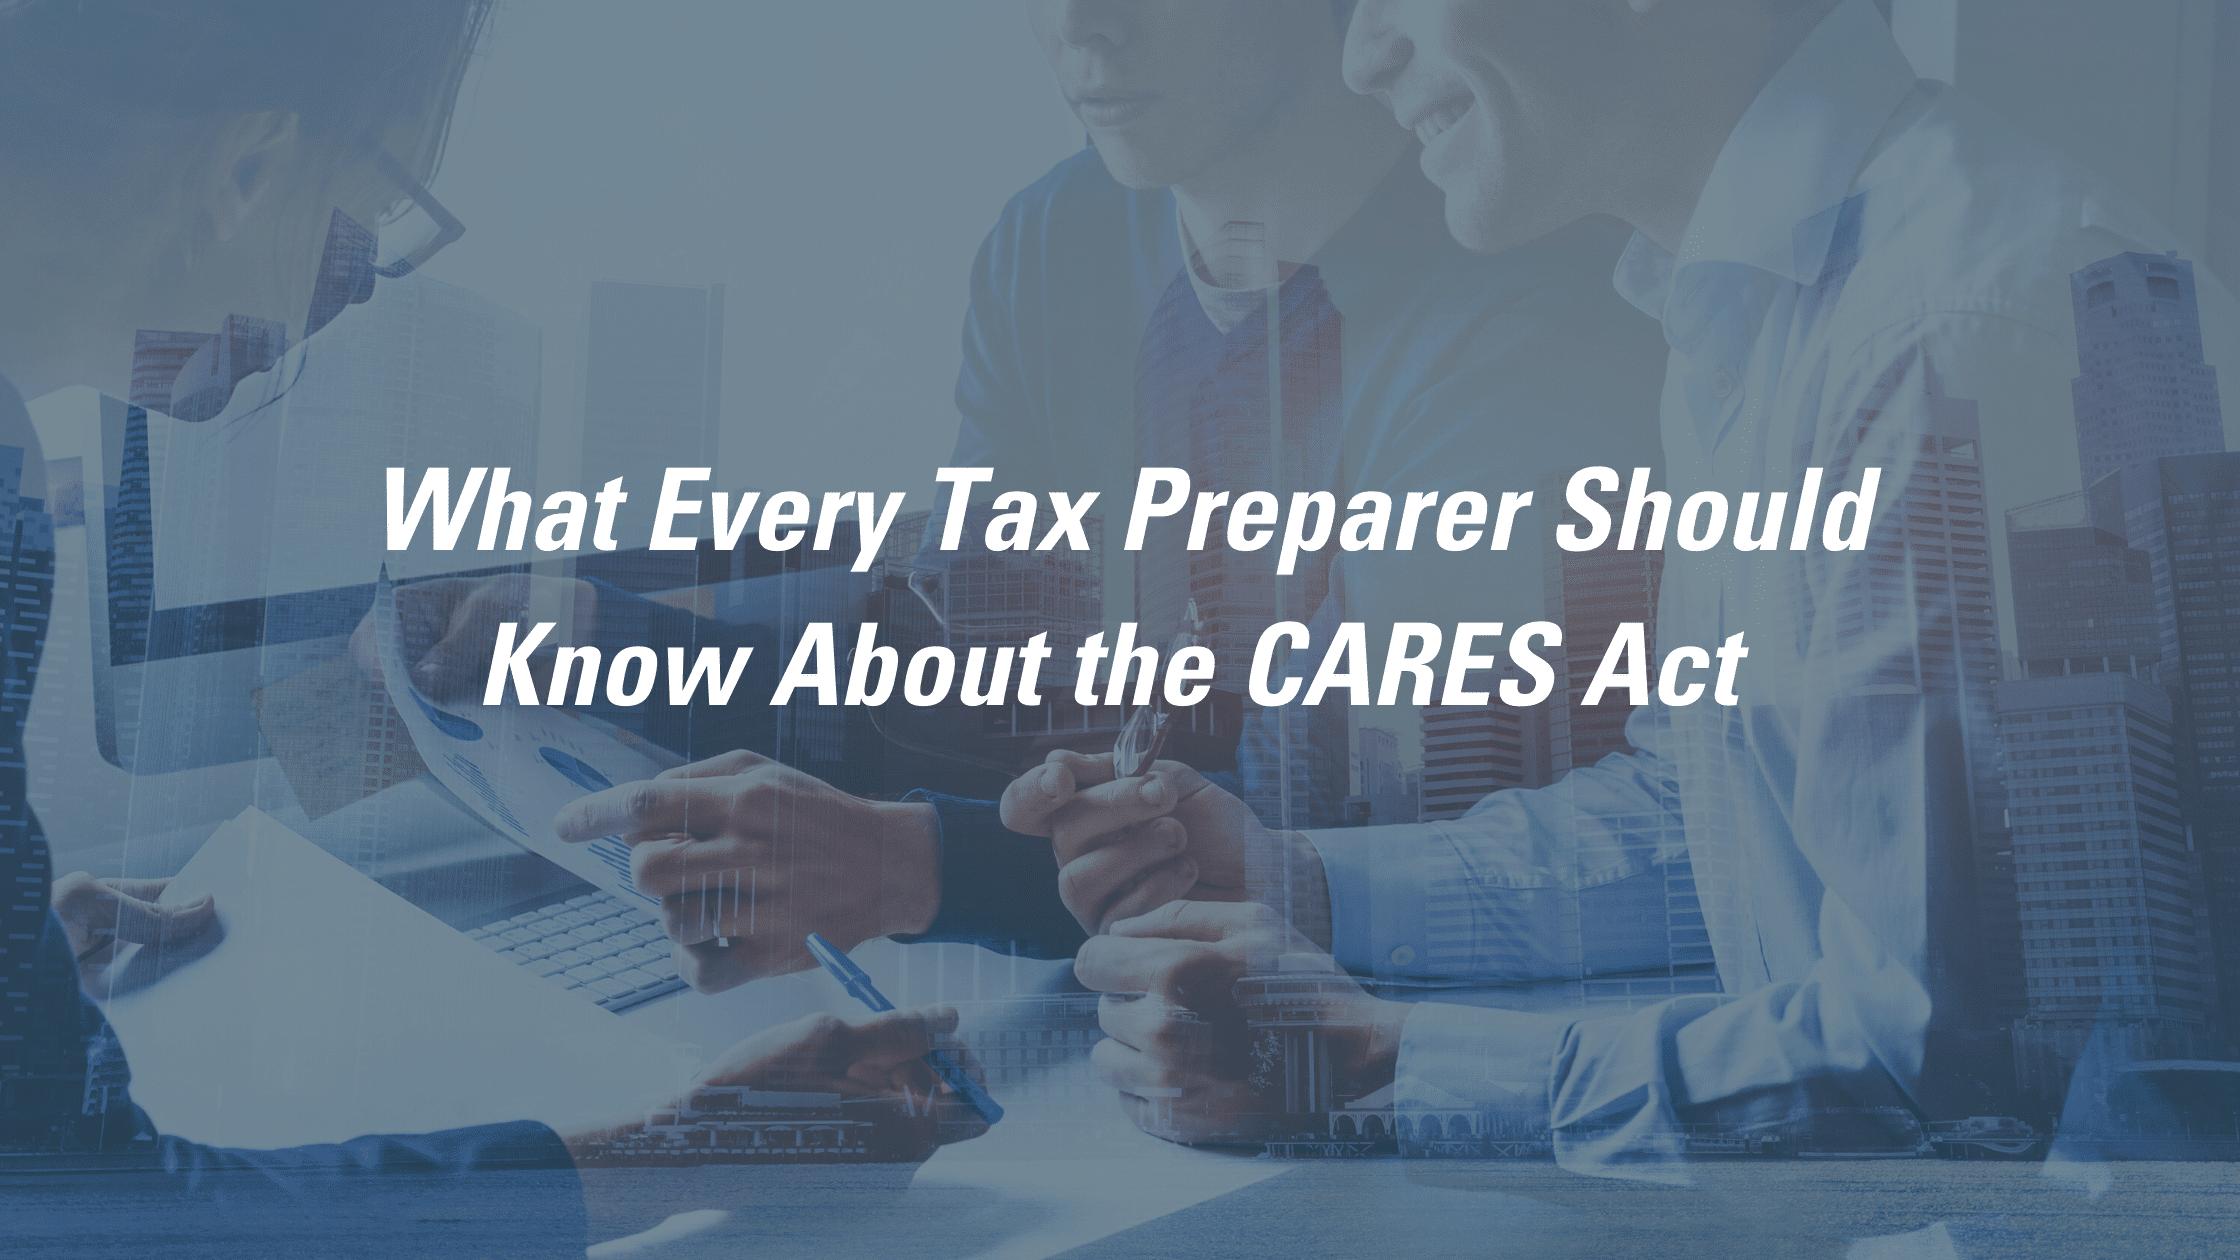 The CARES Act for Tax Preparers